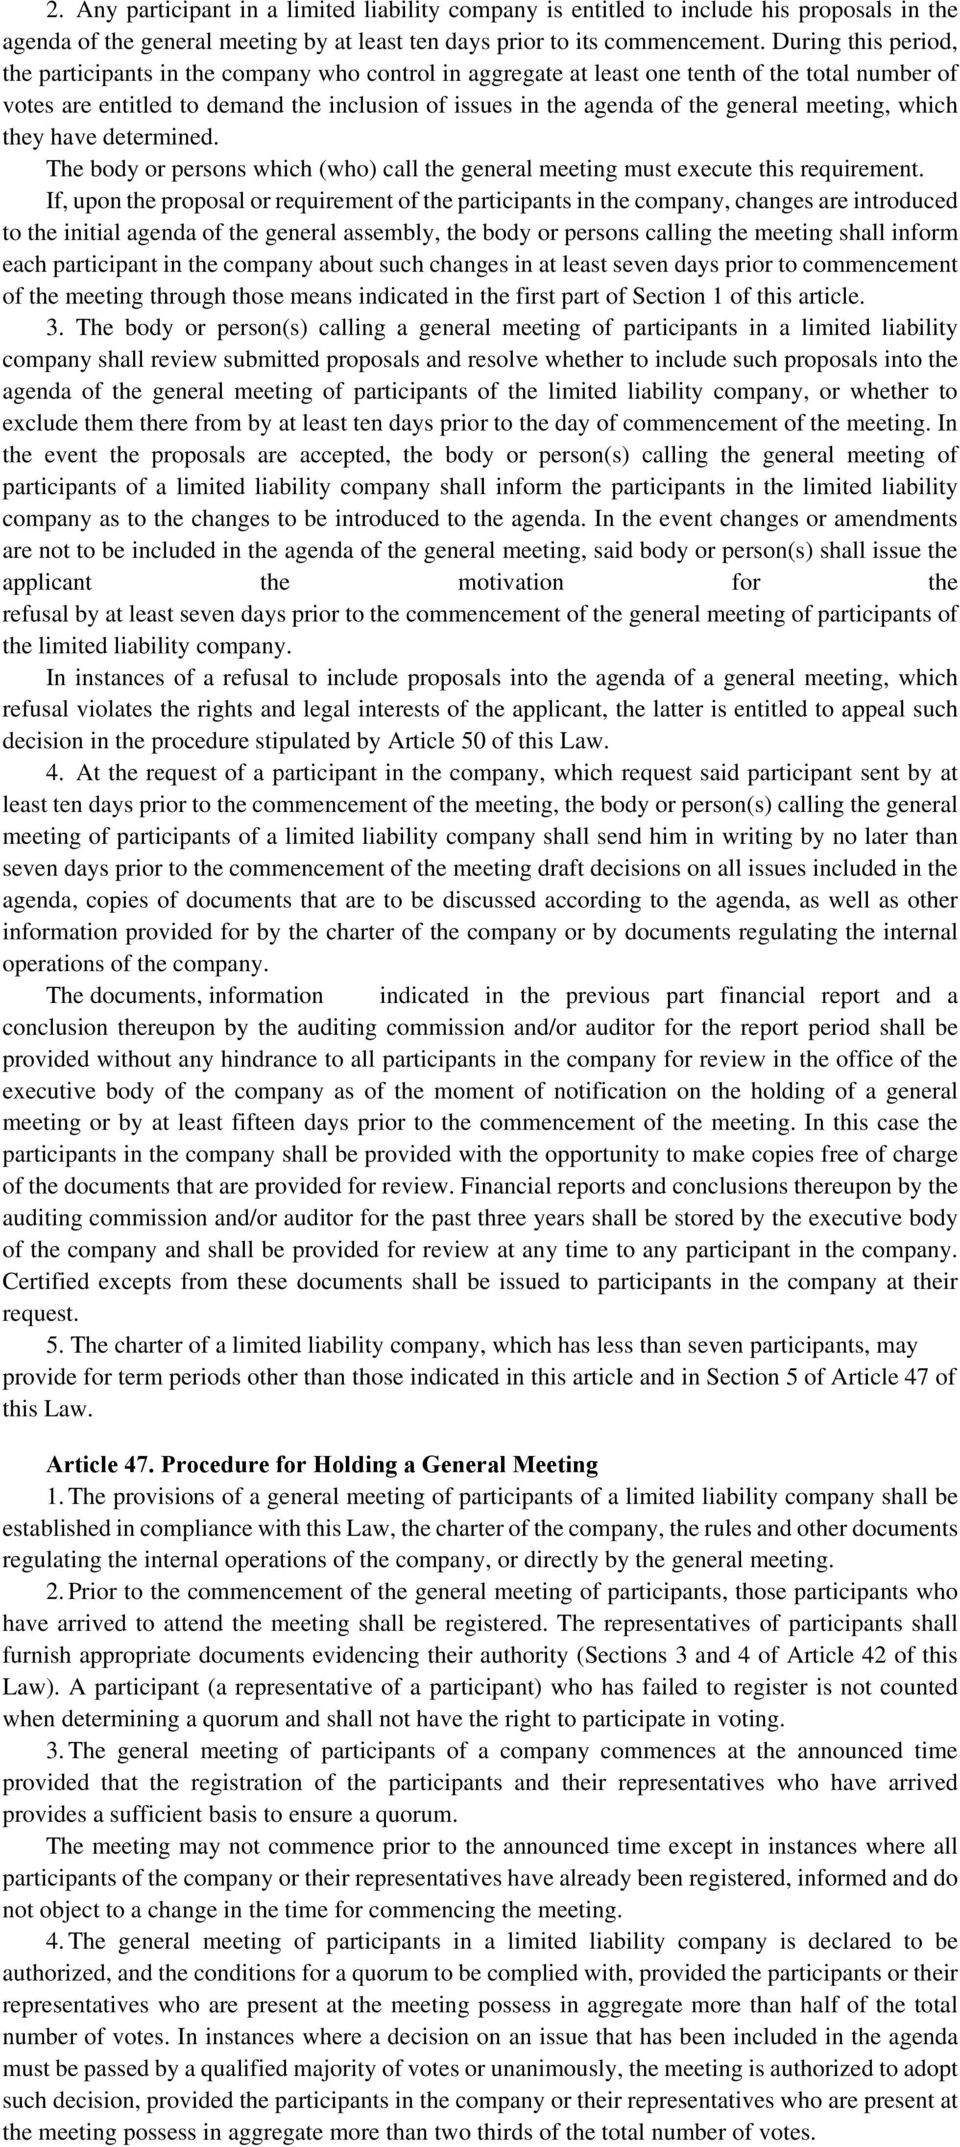 general meeting, which they have determined. The body or persons which (who) call the general meeting must execute this requirement.